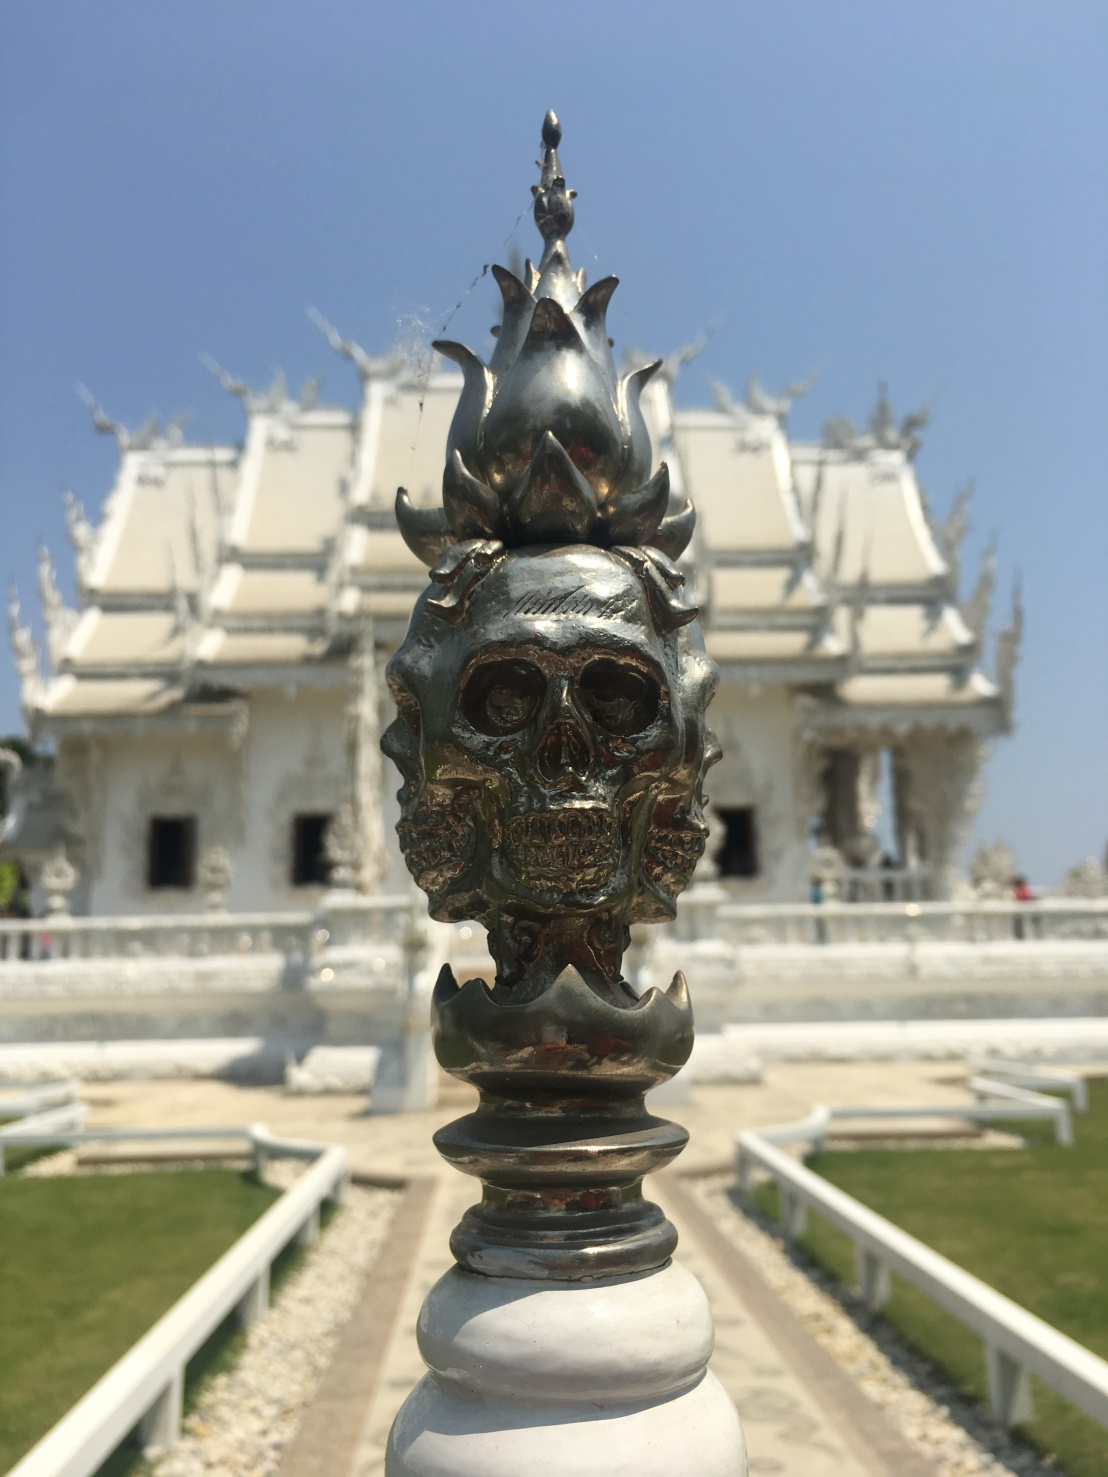 Thawee Hot Springs:White Temple:Wat Chedi Luang:Golden Triangle 59